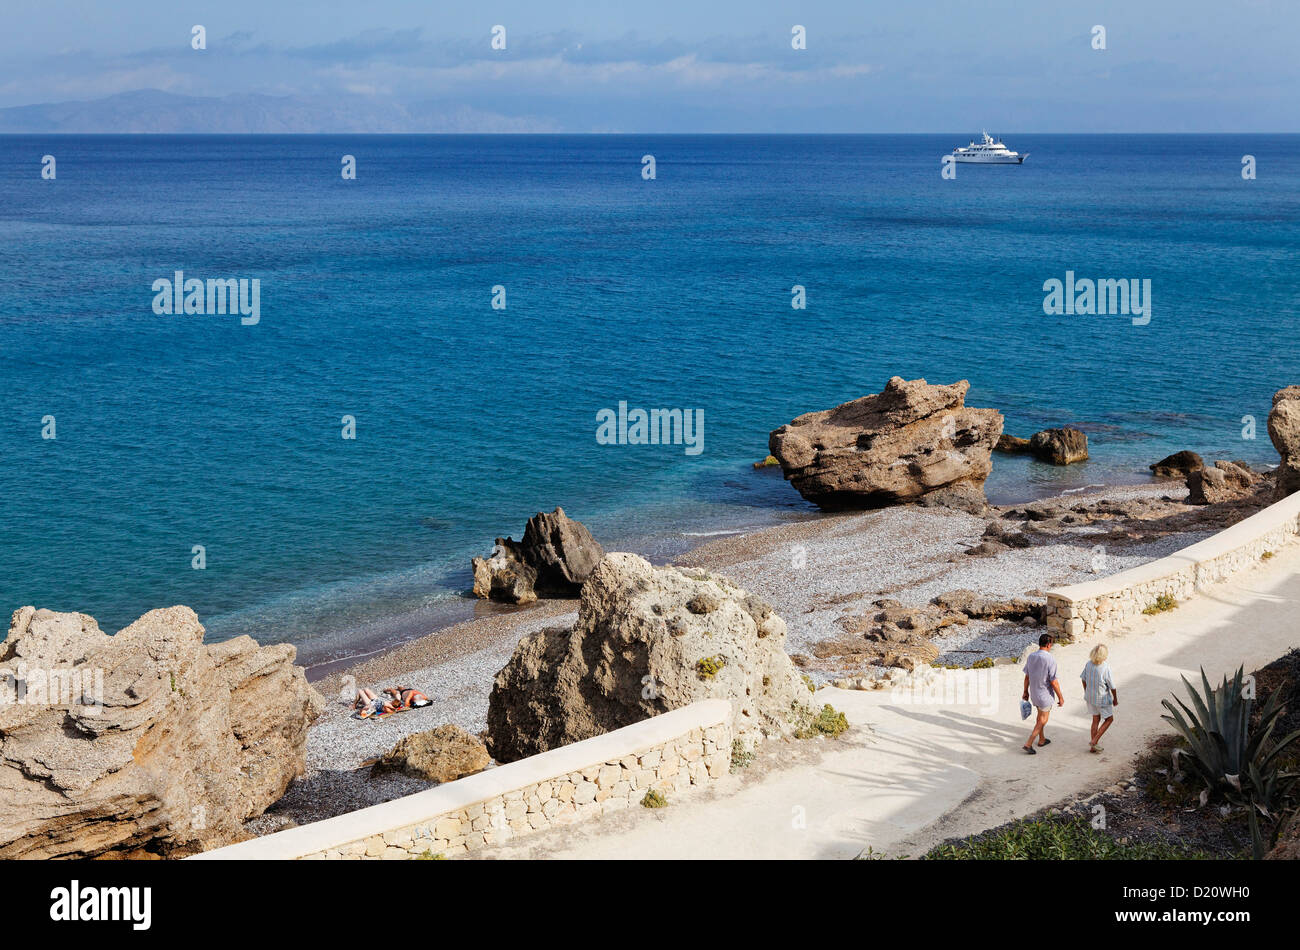 Secluded beach near Ialyssos, West coast, Rhodes, Dodecanese Islands, Greece, Europe - Stock Image